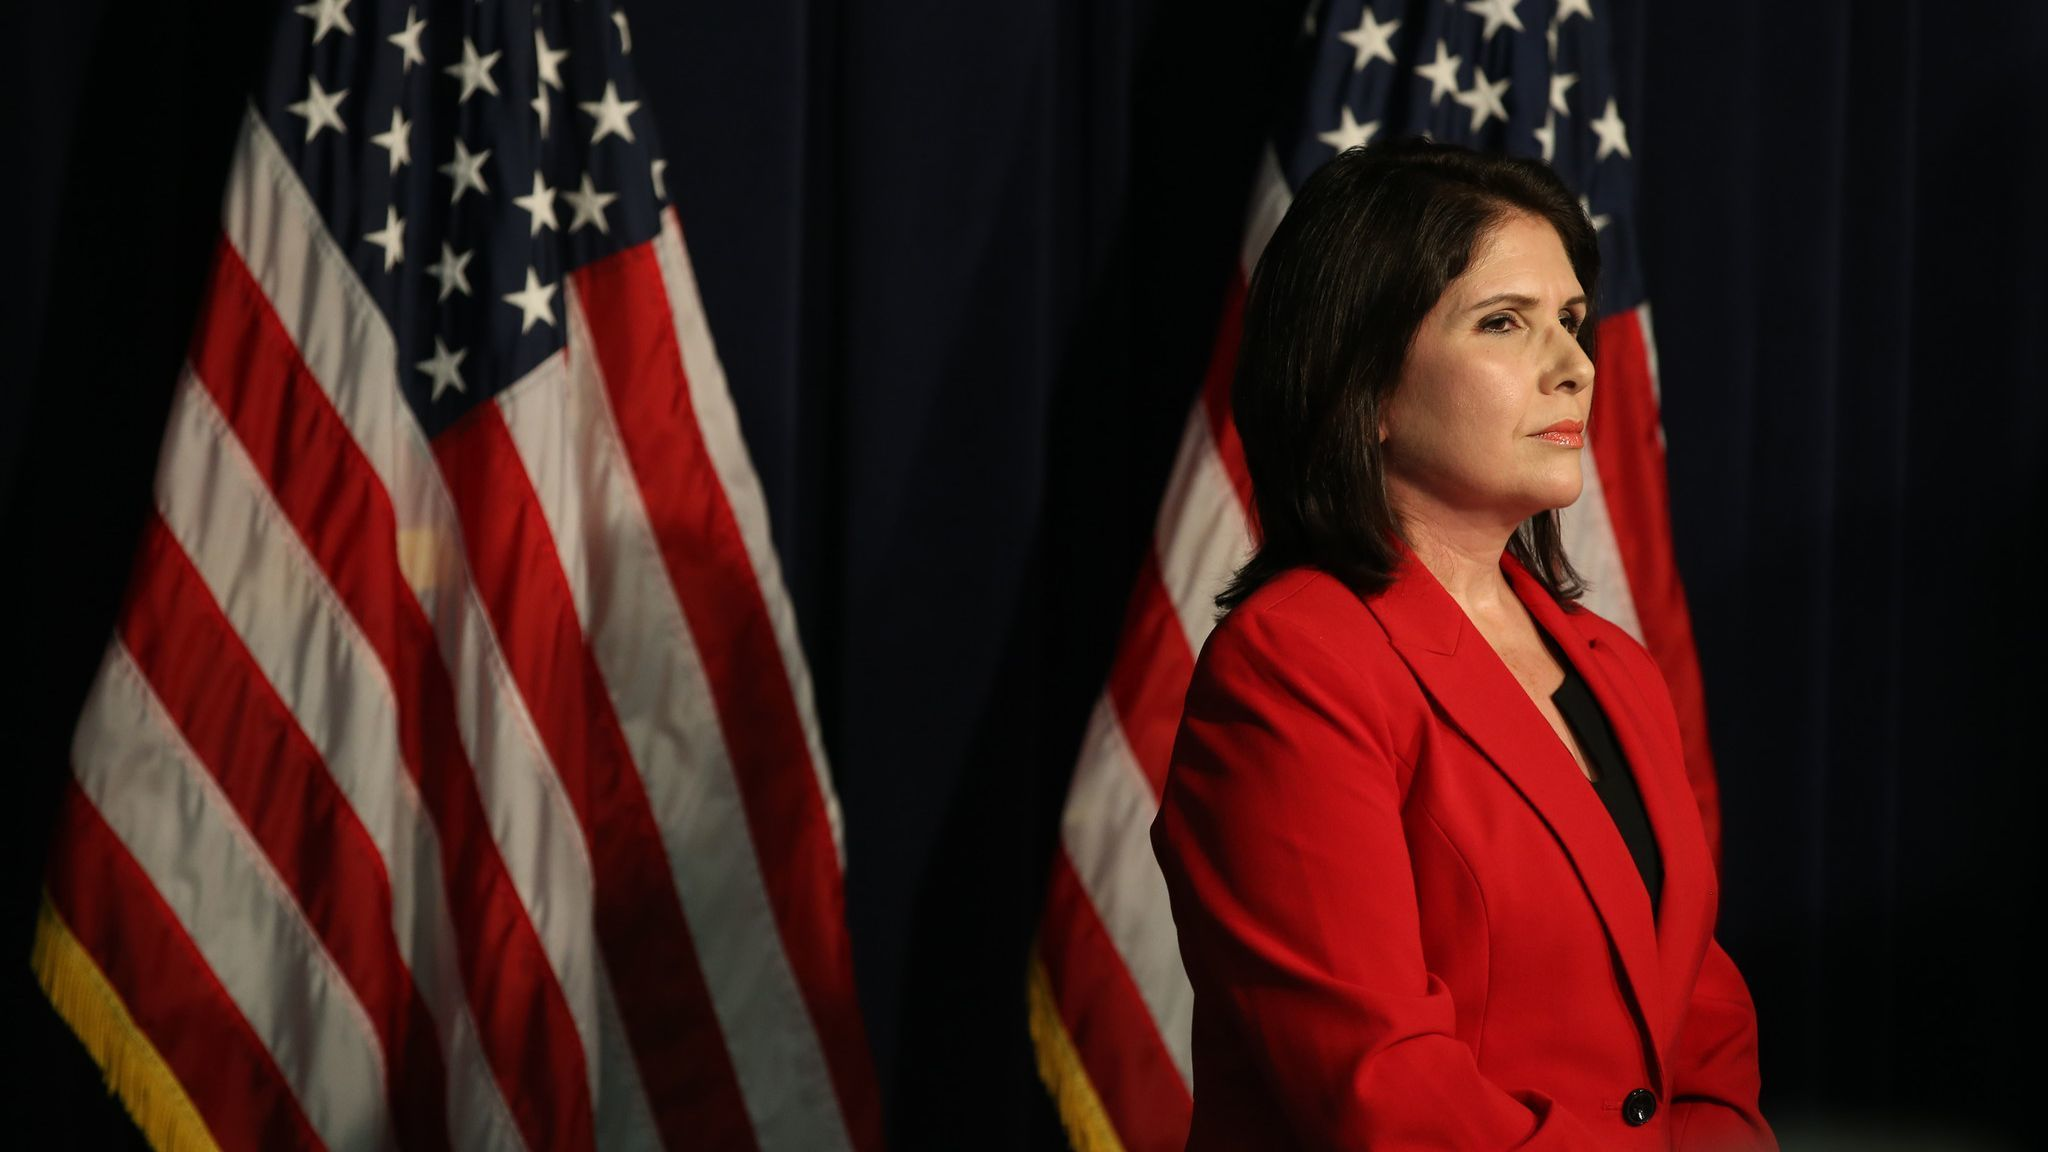 Former Lt. Gov. Evelyn Sanguinetti seeking GOP nomination to run against U.S. Rep. Sean Casten